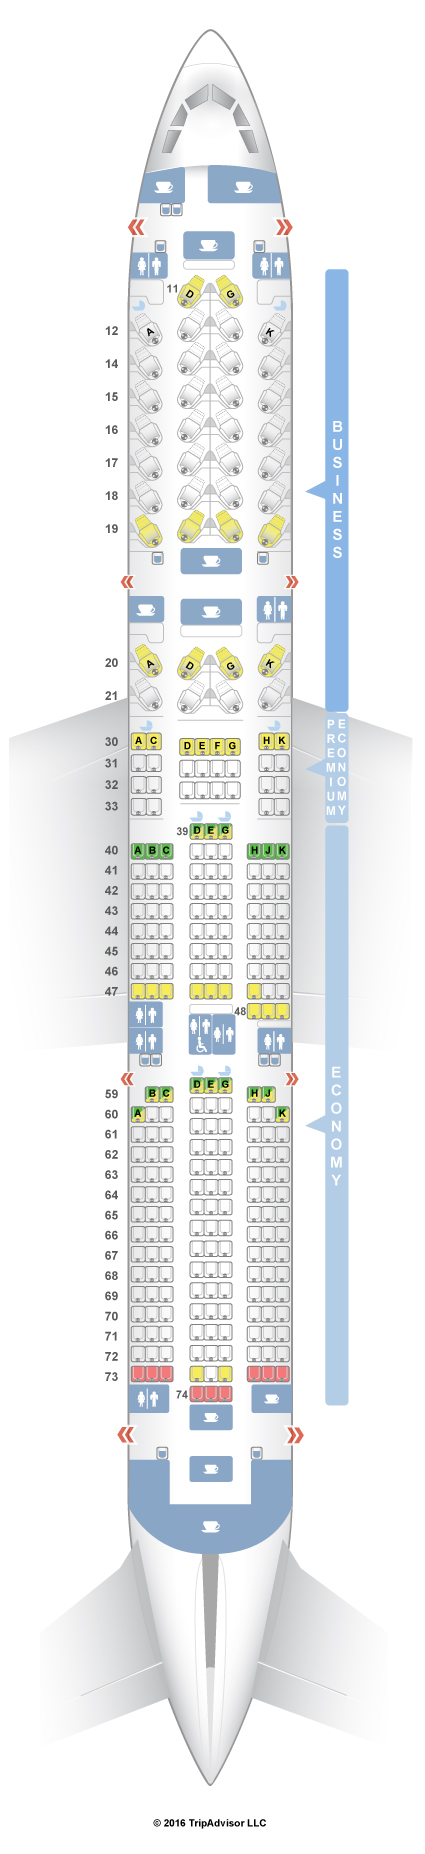 seatguru seat map cathay pacific airbus a350 900 35g seating